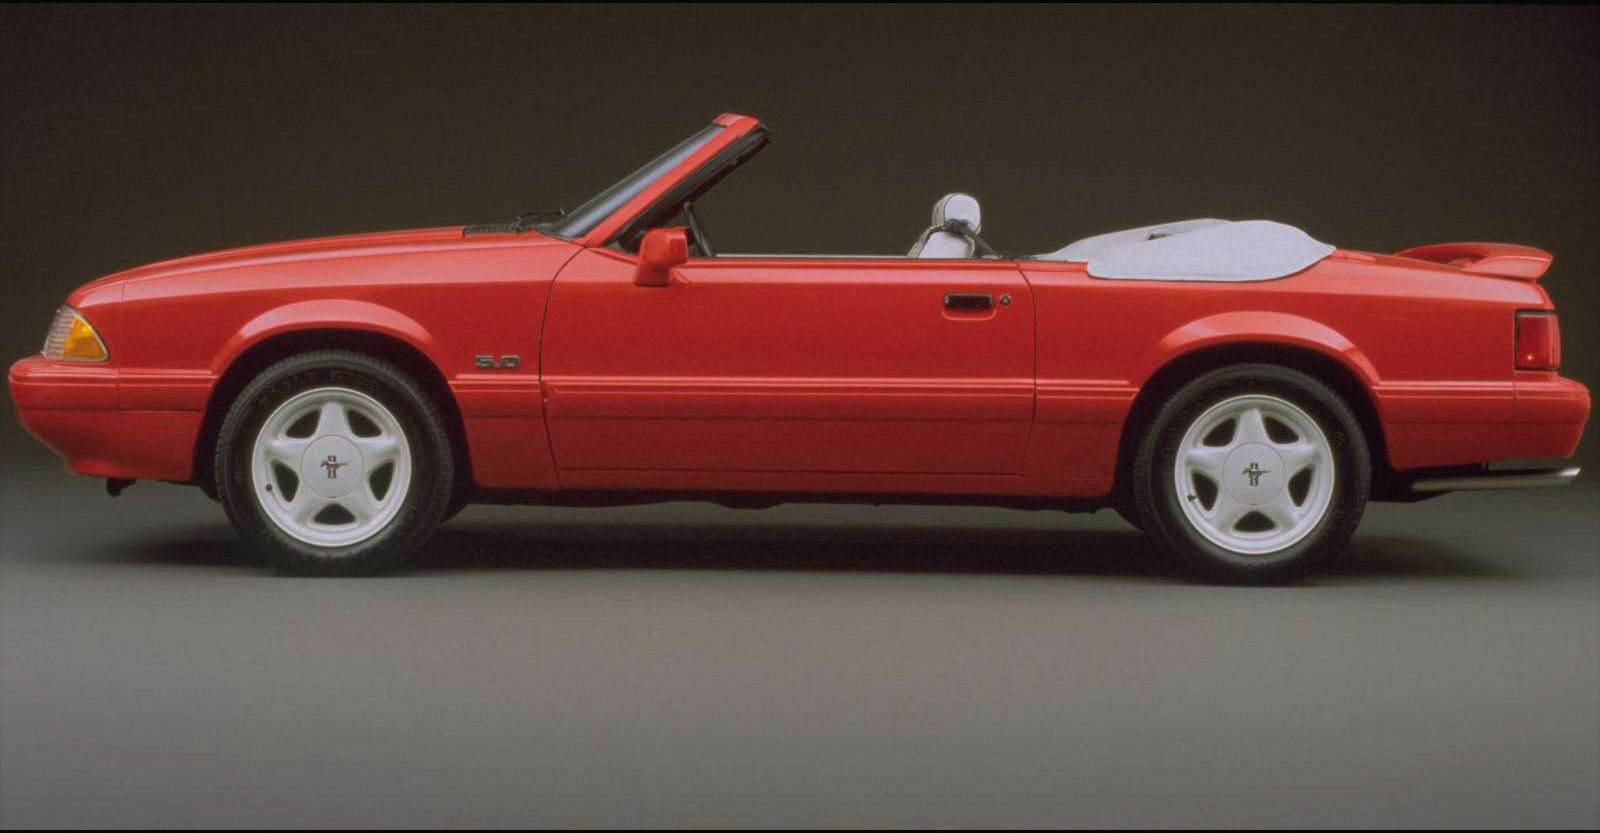 "1992 1/2 Mustang LX ""Spring Feature Car"""